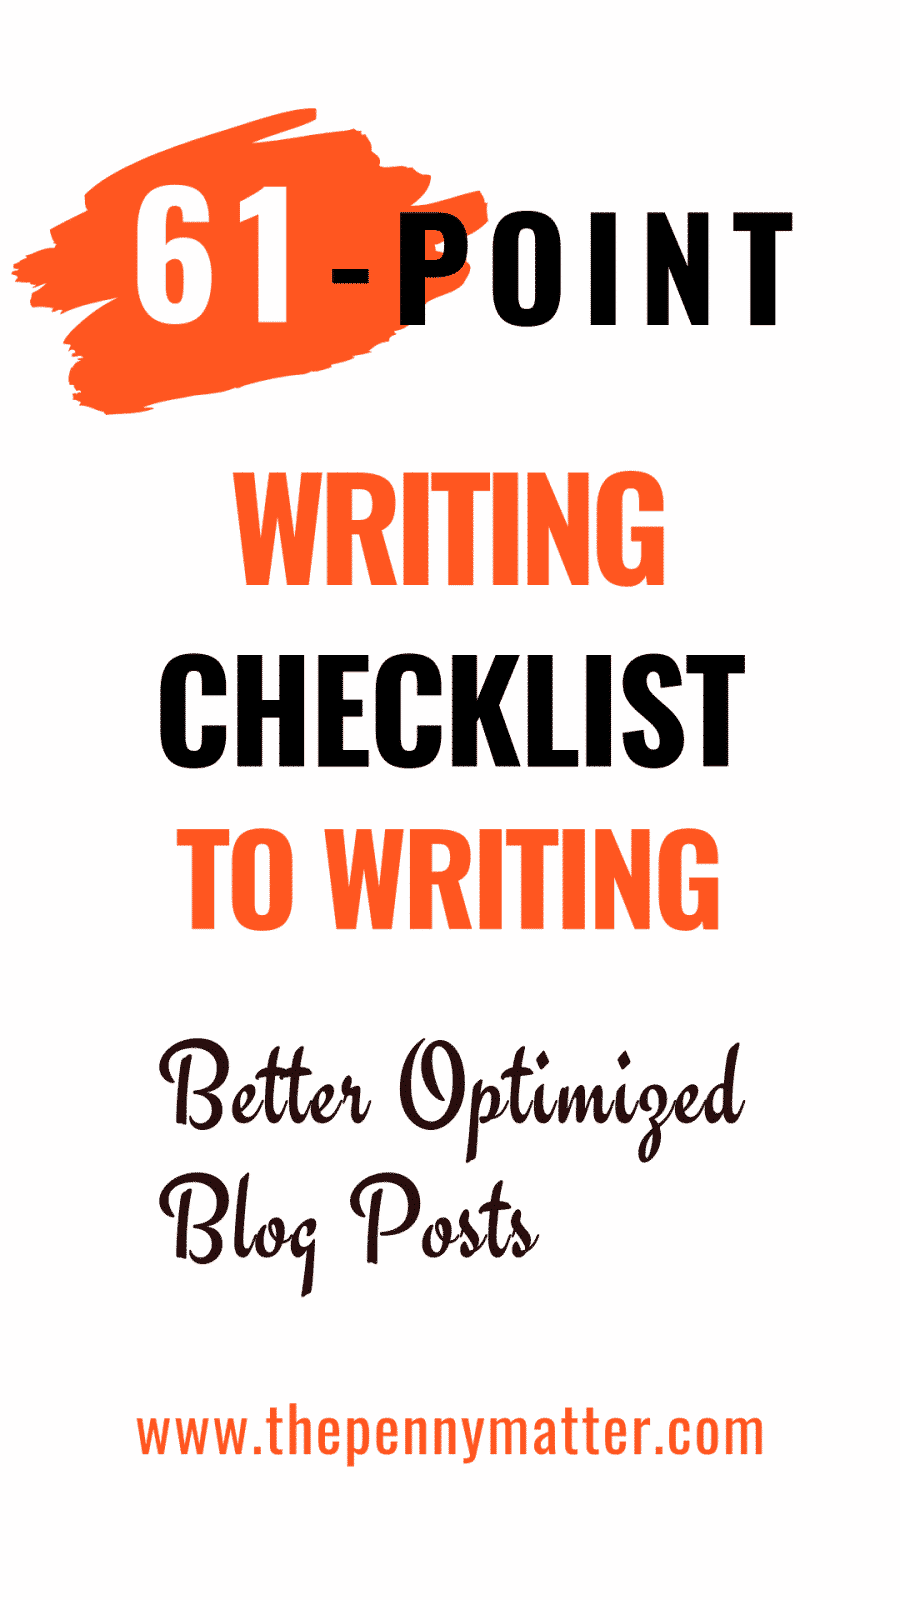 61-point content writing checklist for optimizing blog posts